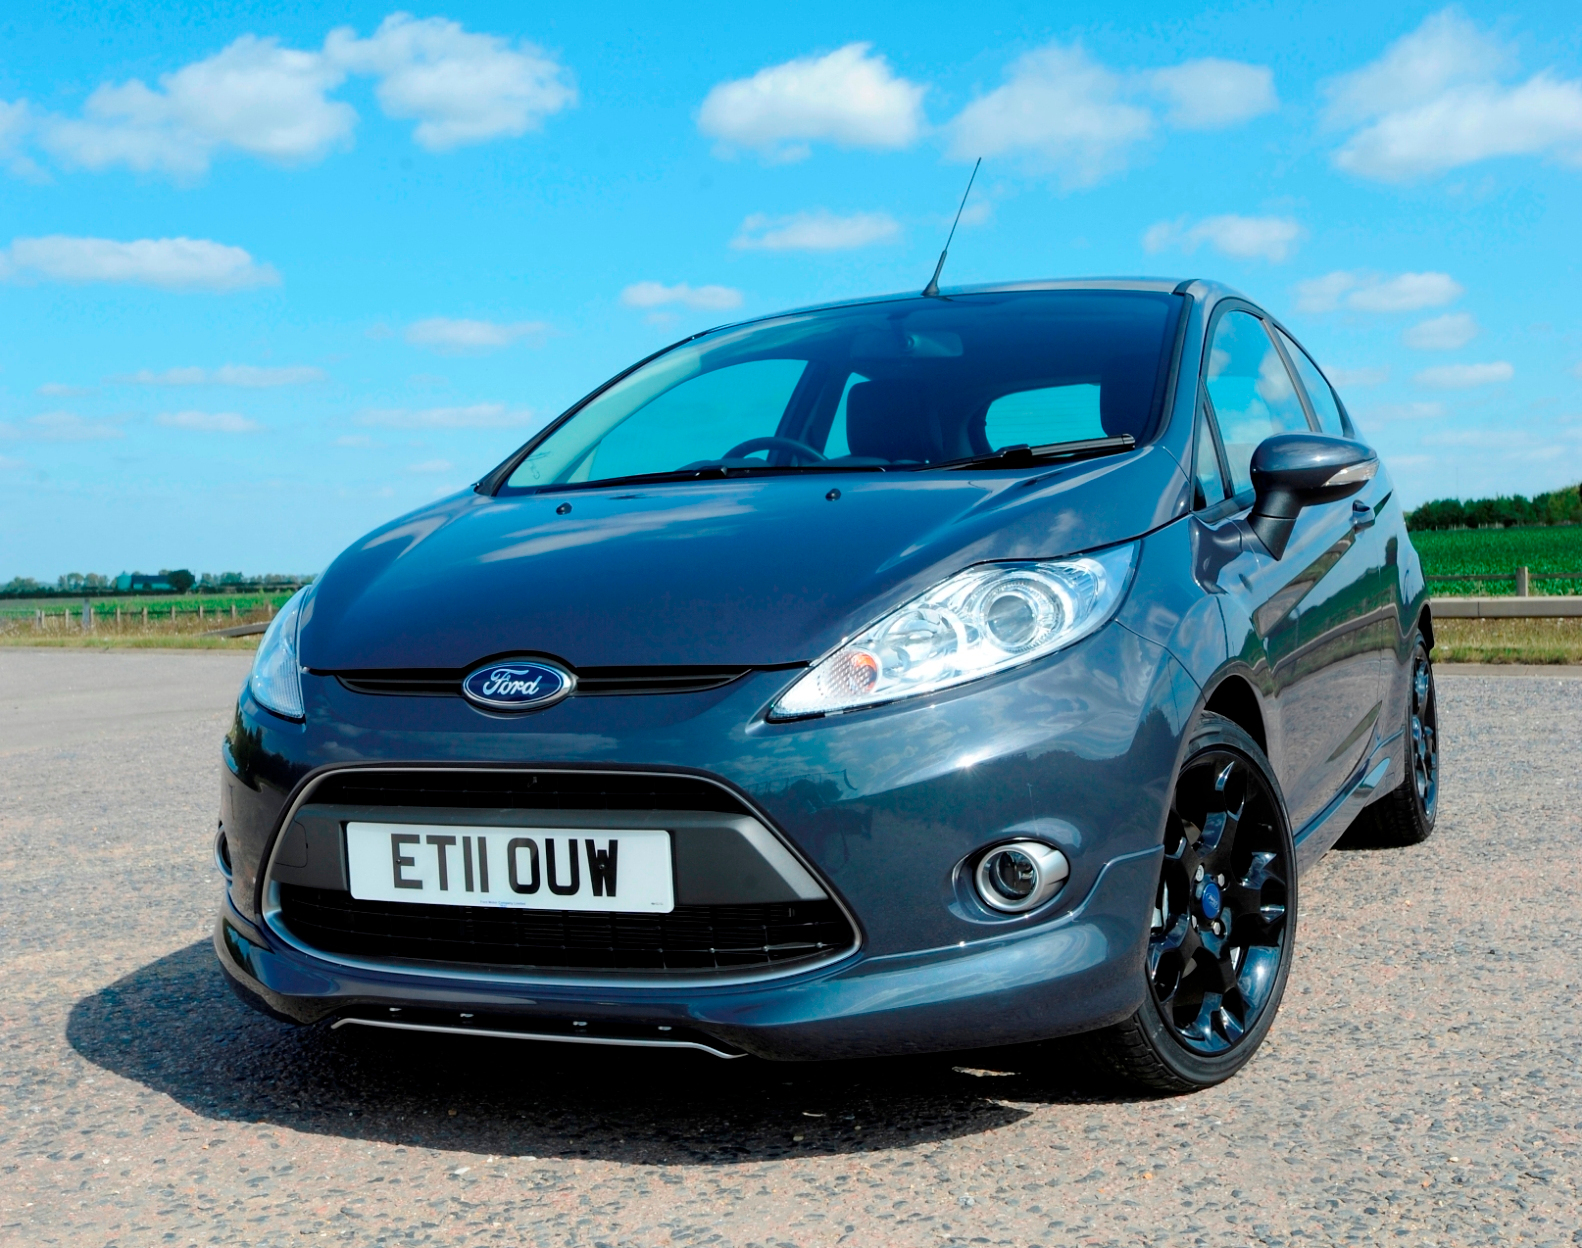 The ford fiesta range has